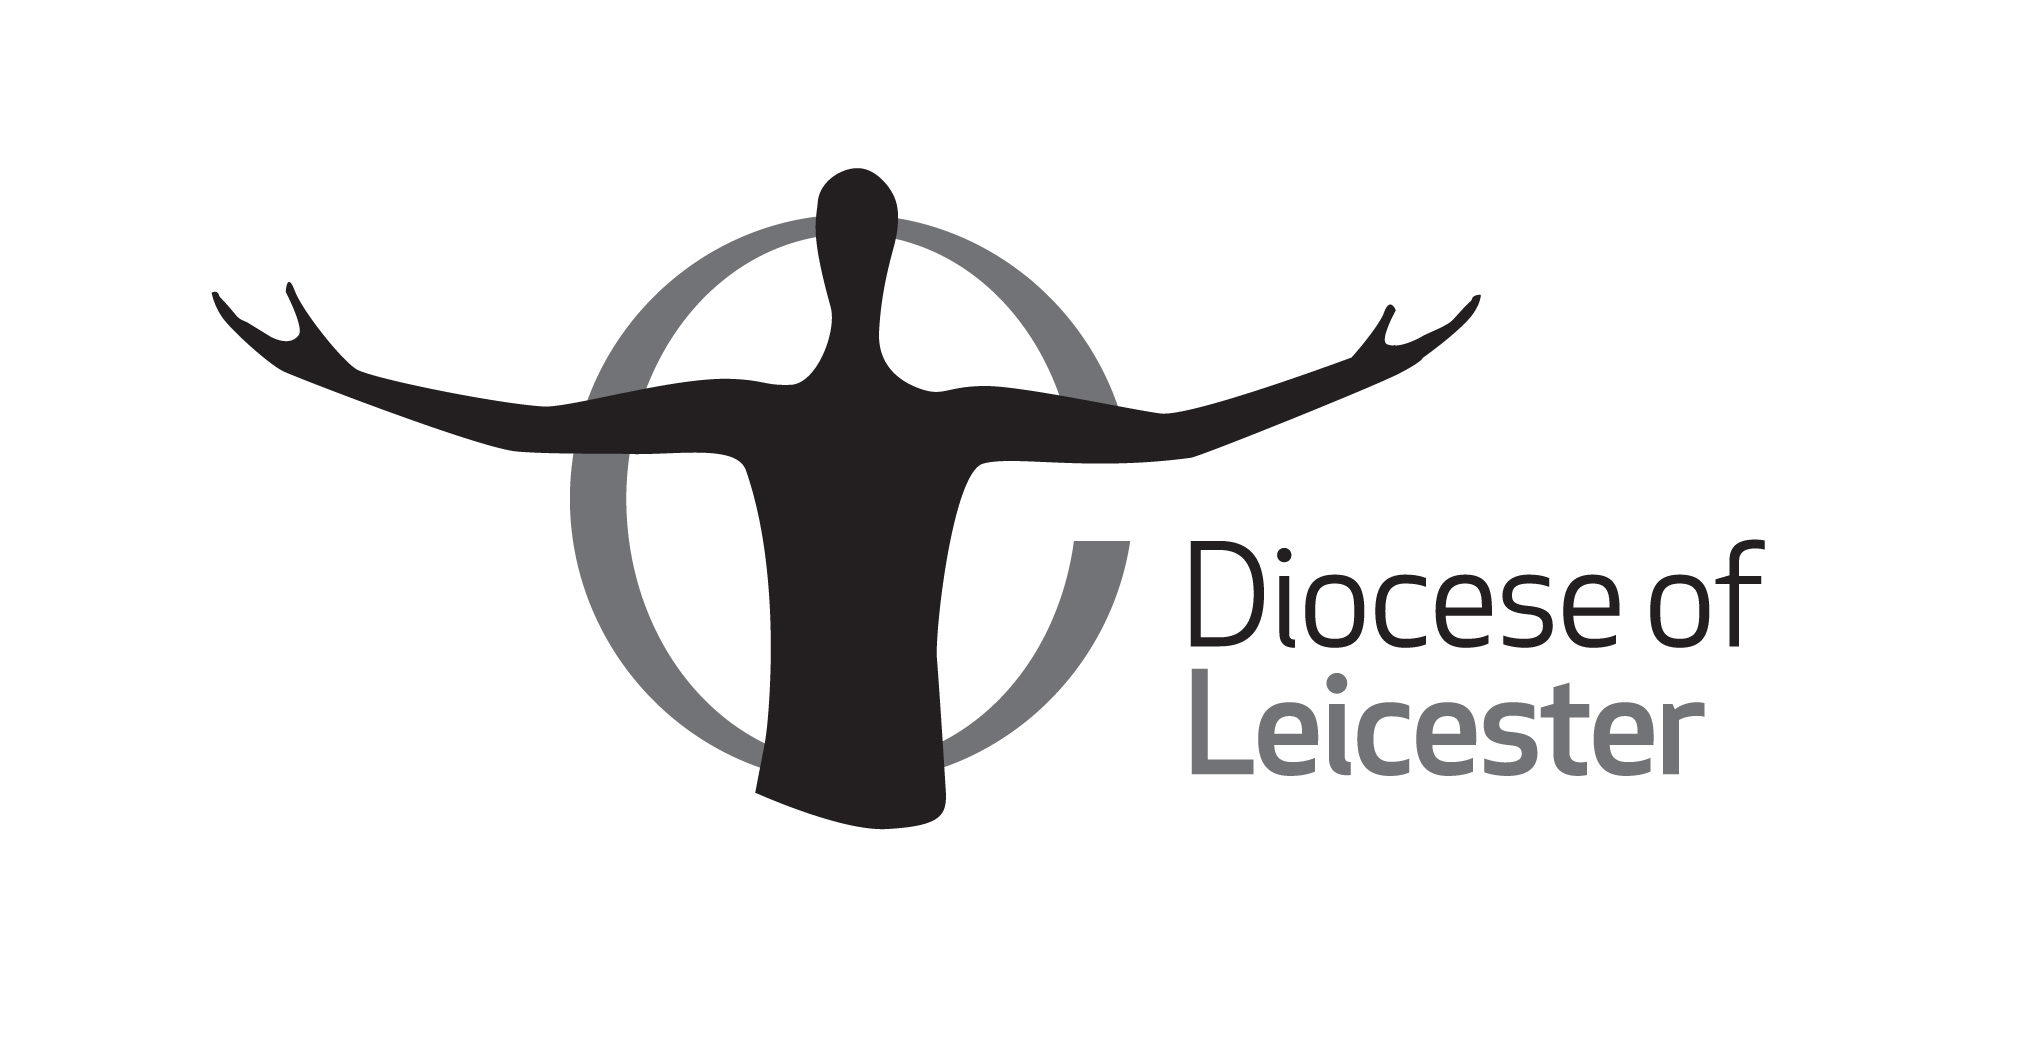 Diocese of Leicester